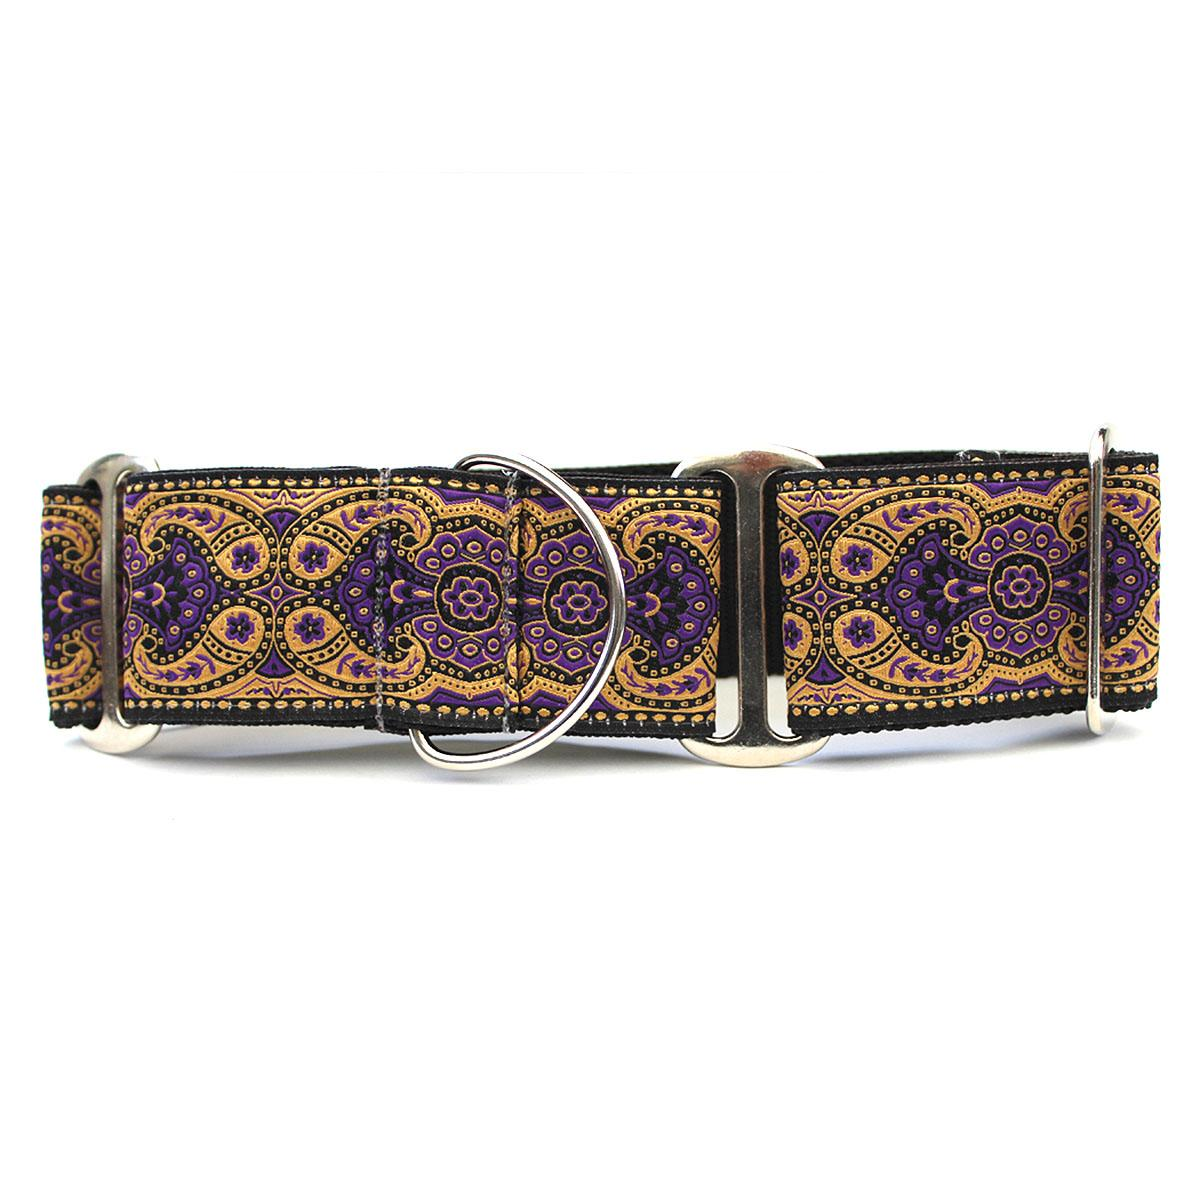 Kashmir Wide Martingale Dog Collar by Diva Dog - Sultan Purple